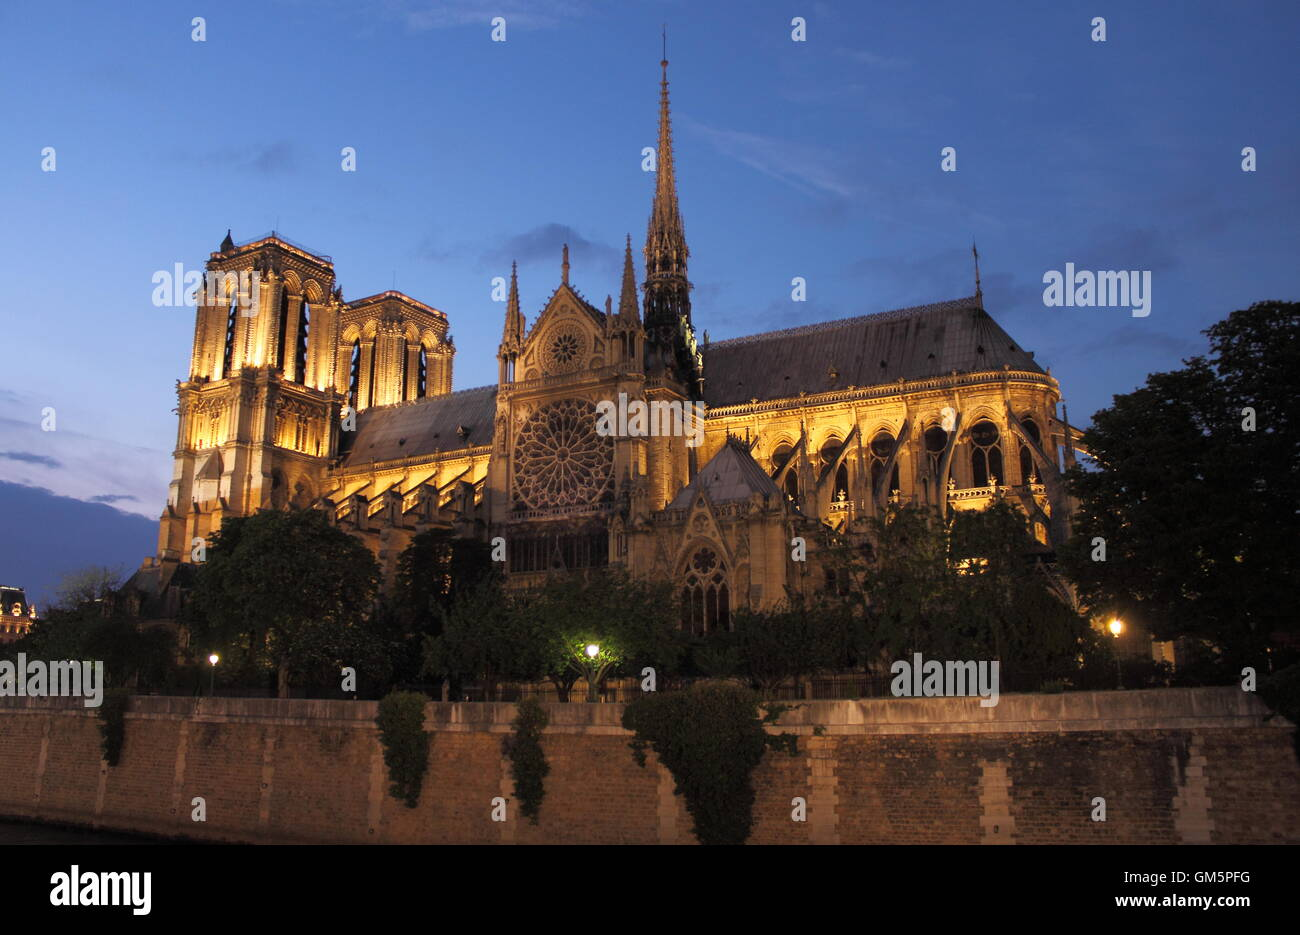 Notre Dame Cathedral at sunset. Paris, France - Stock Image